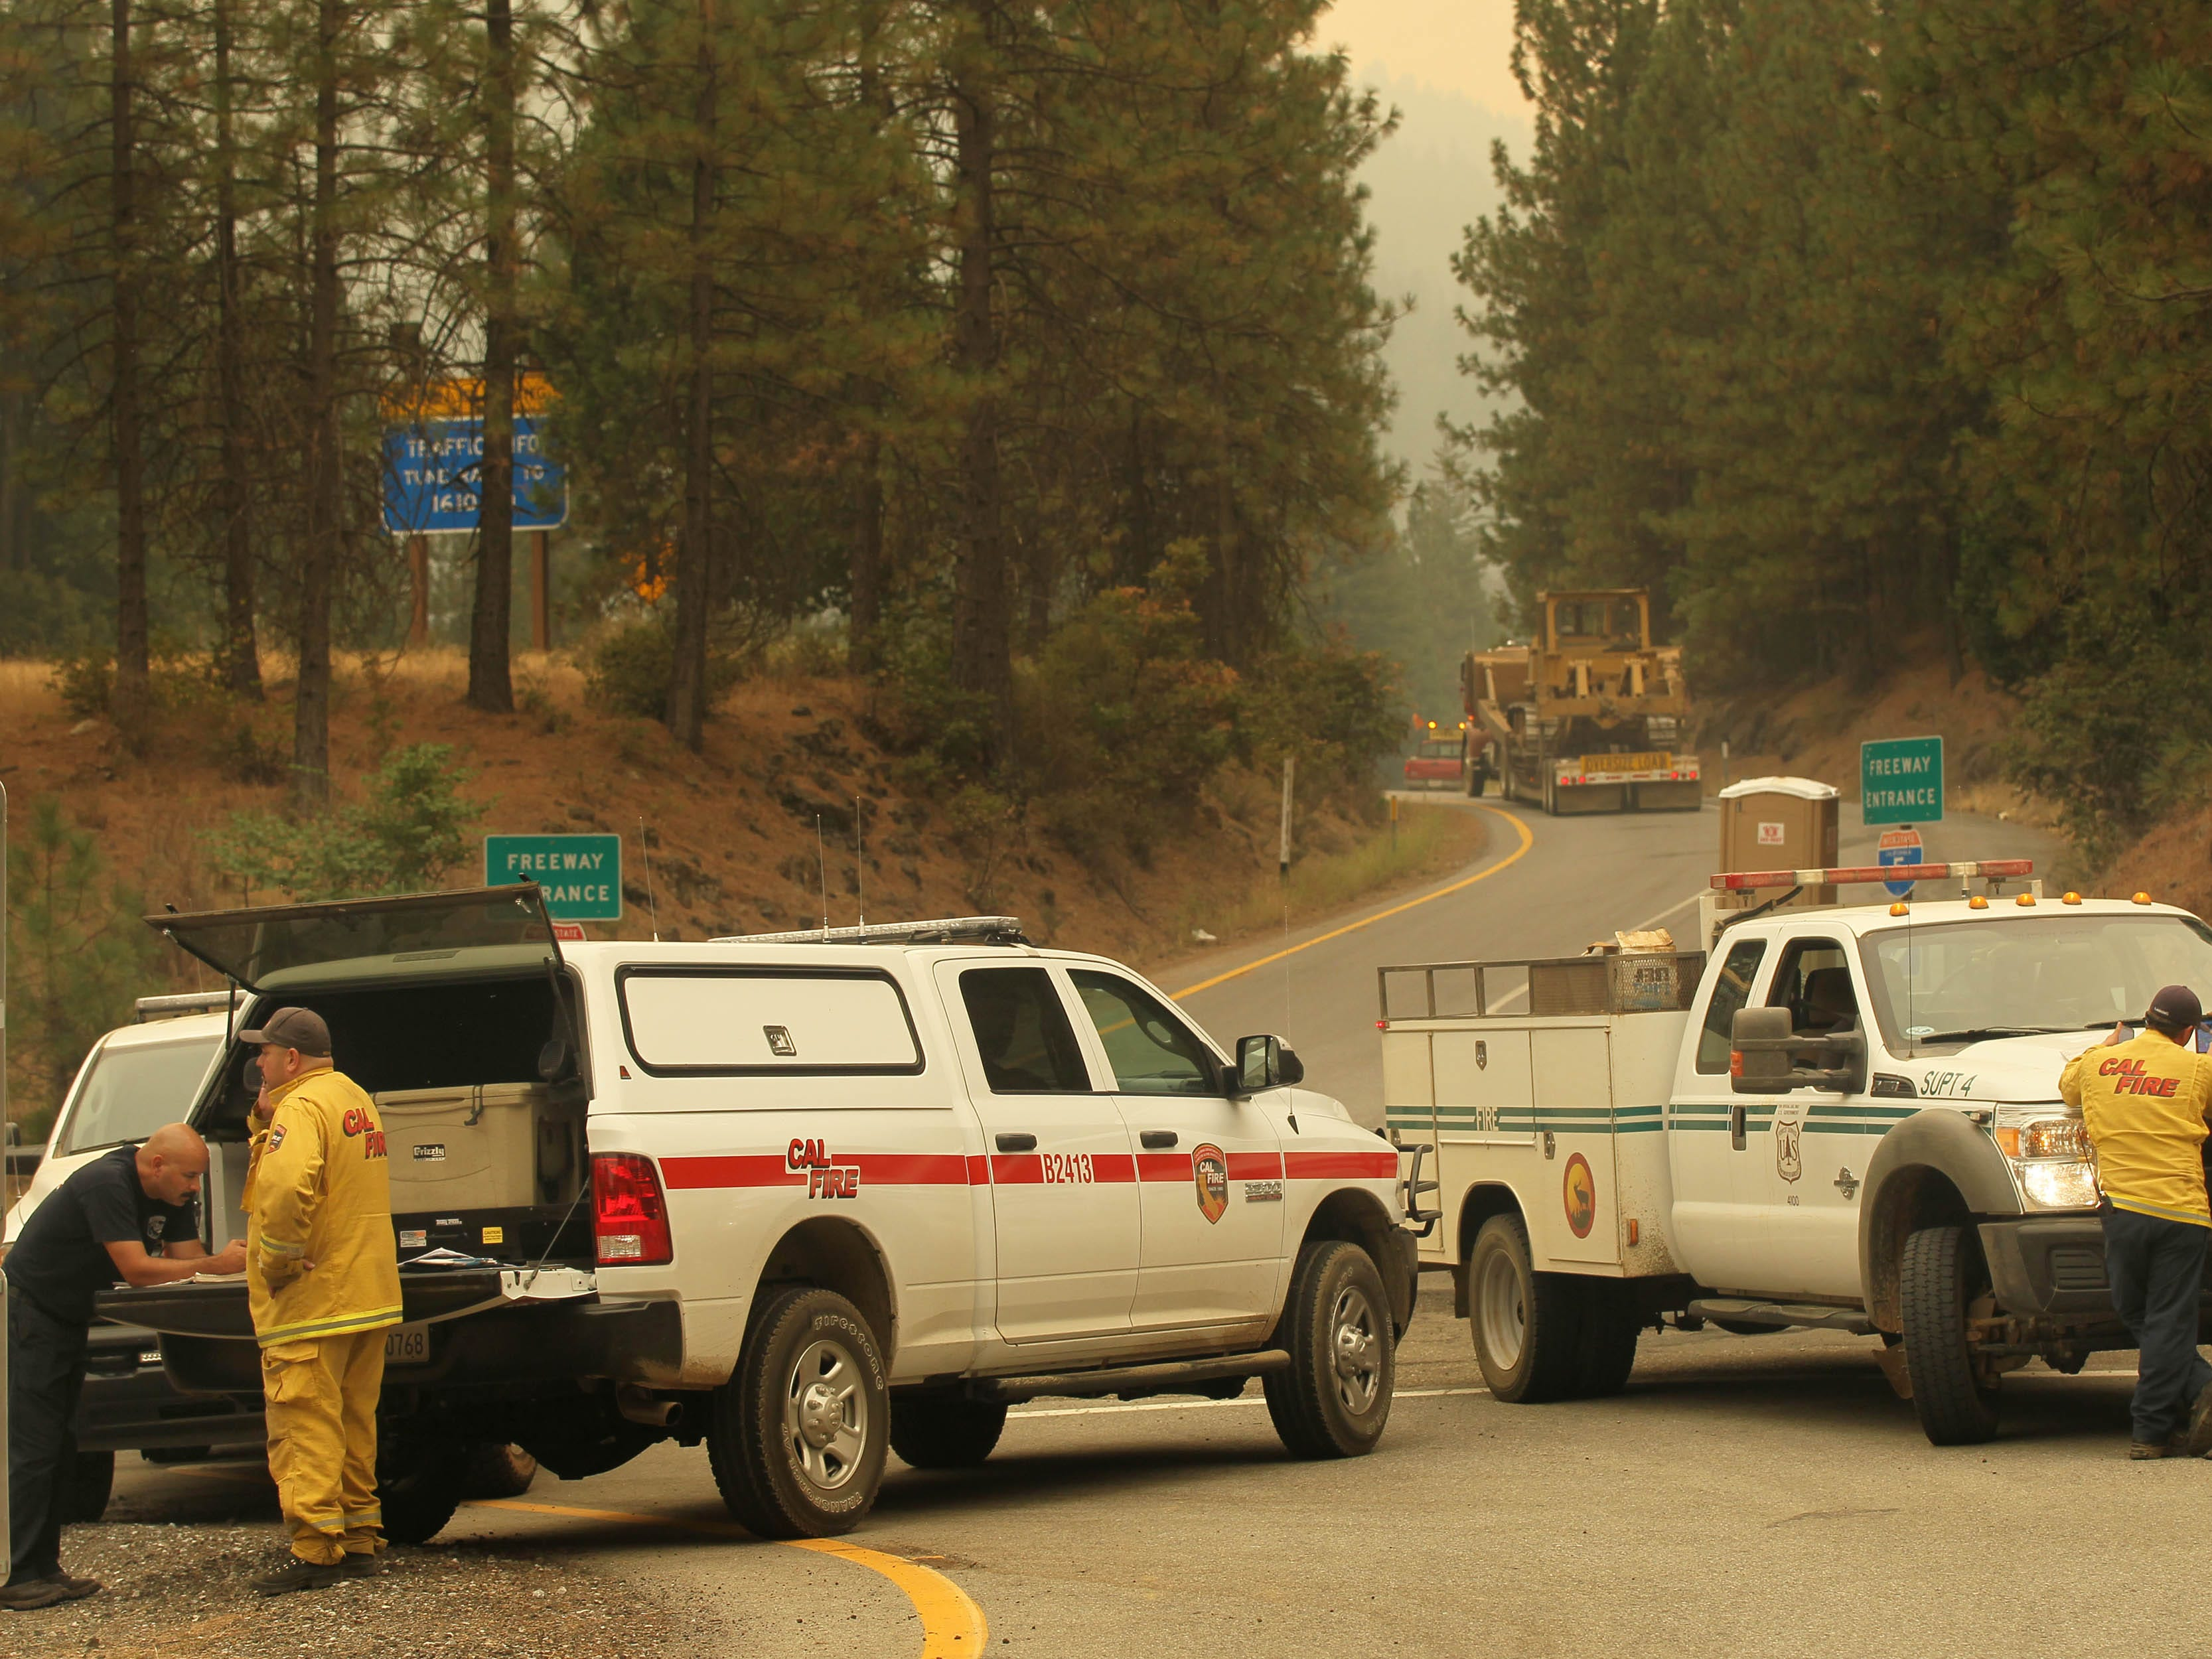 California Department of Forestry and Fire Protection and U.S. Forest Service personnel work together on Saturday afternoon, Sept. 8, 2018 at Sims Road and the Interstate 5 overpass to look into all the resources to plot out where they can put out the fire . (Hung T. Vu/ Special to the Record Searchlight)